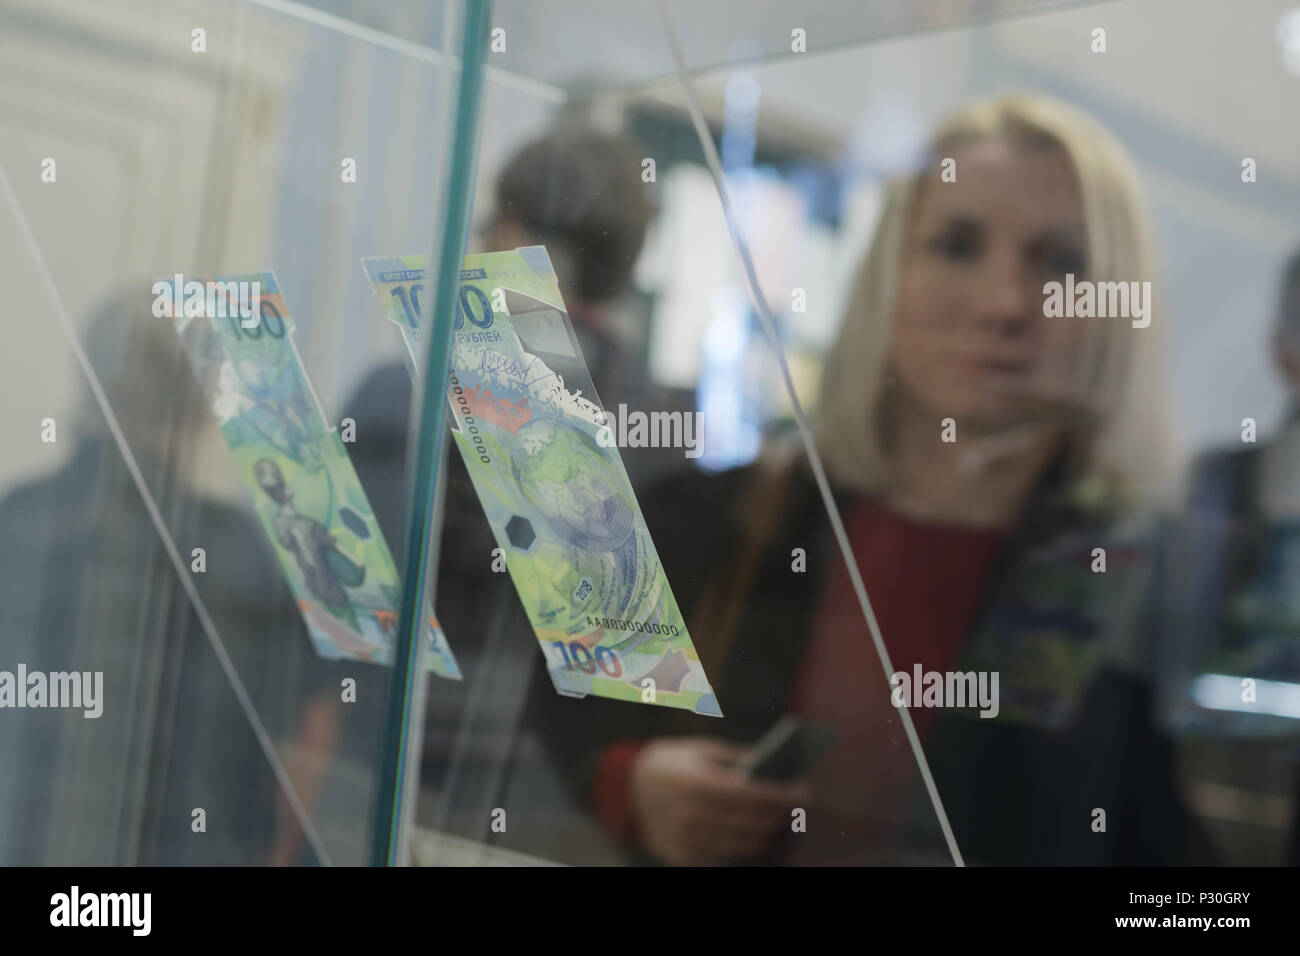 St. Petersburg, Russia - May 23, 2018: People at commemorative 100 rubles banknotes for FIFA World Cup Russia 2018 exposed in the exhibition '1818+. T - Stock Image